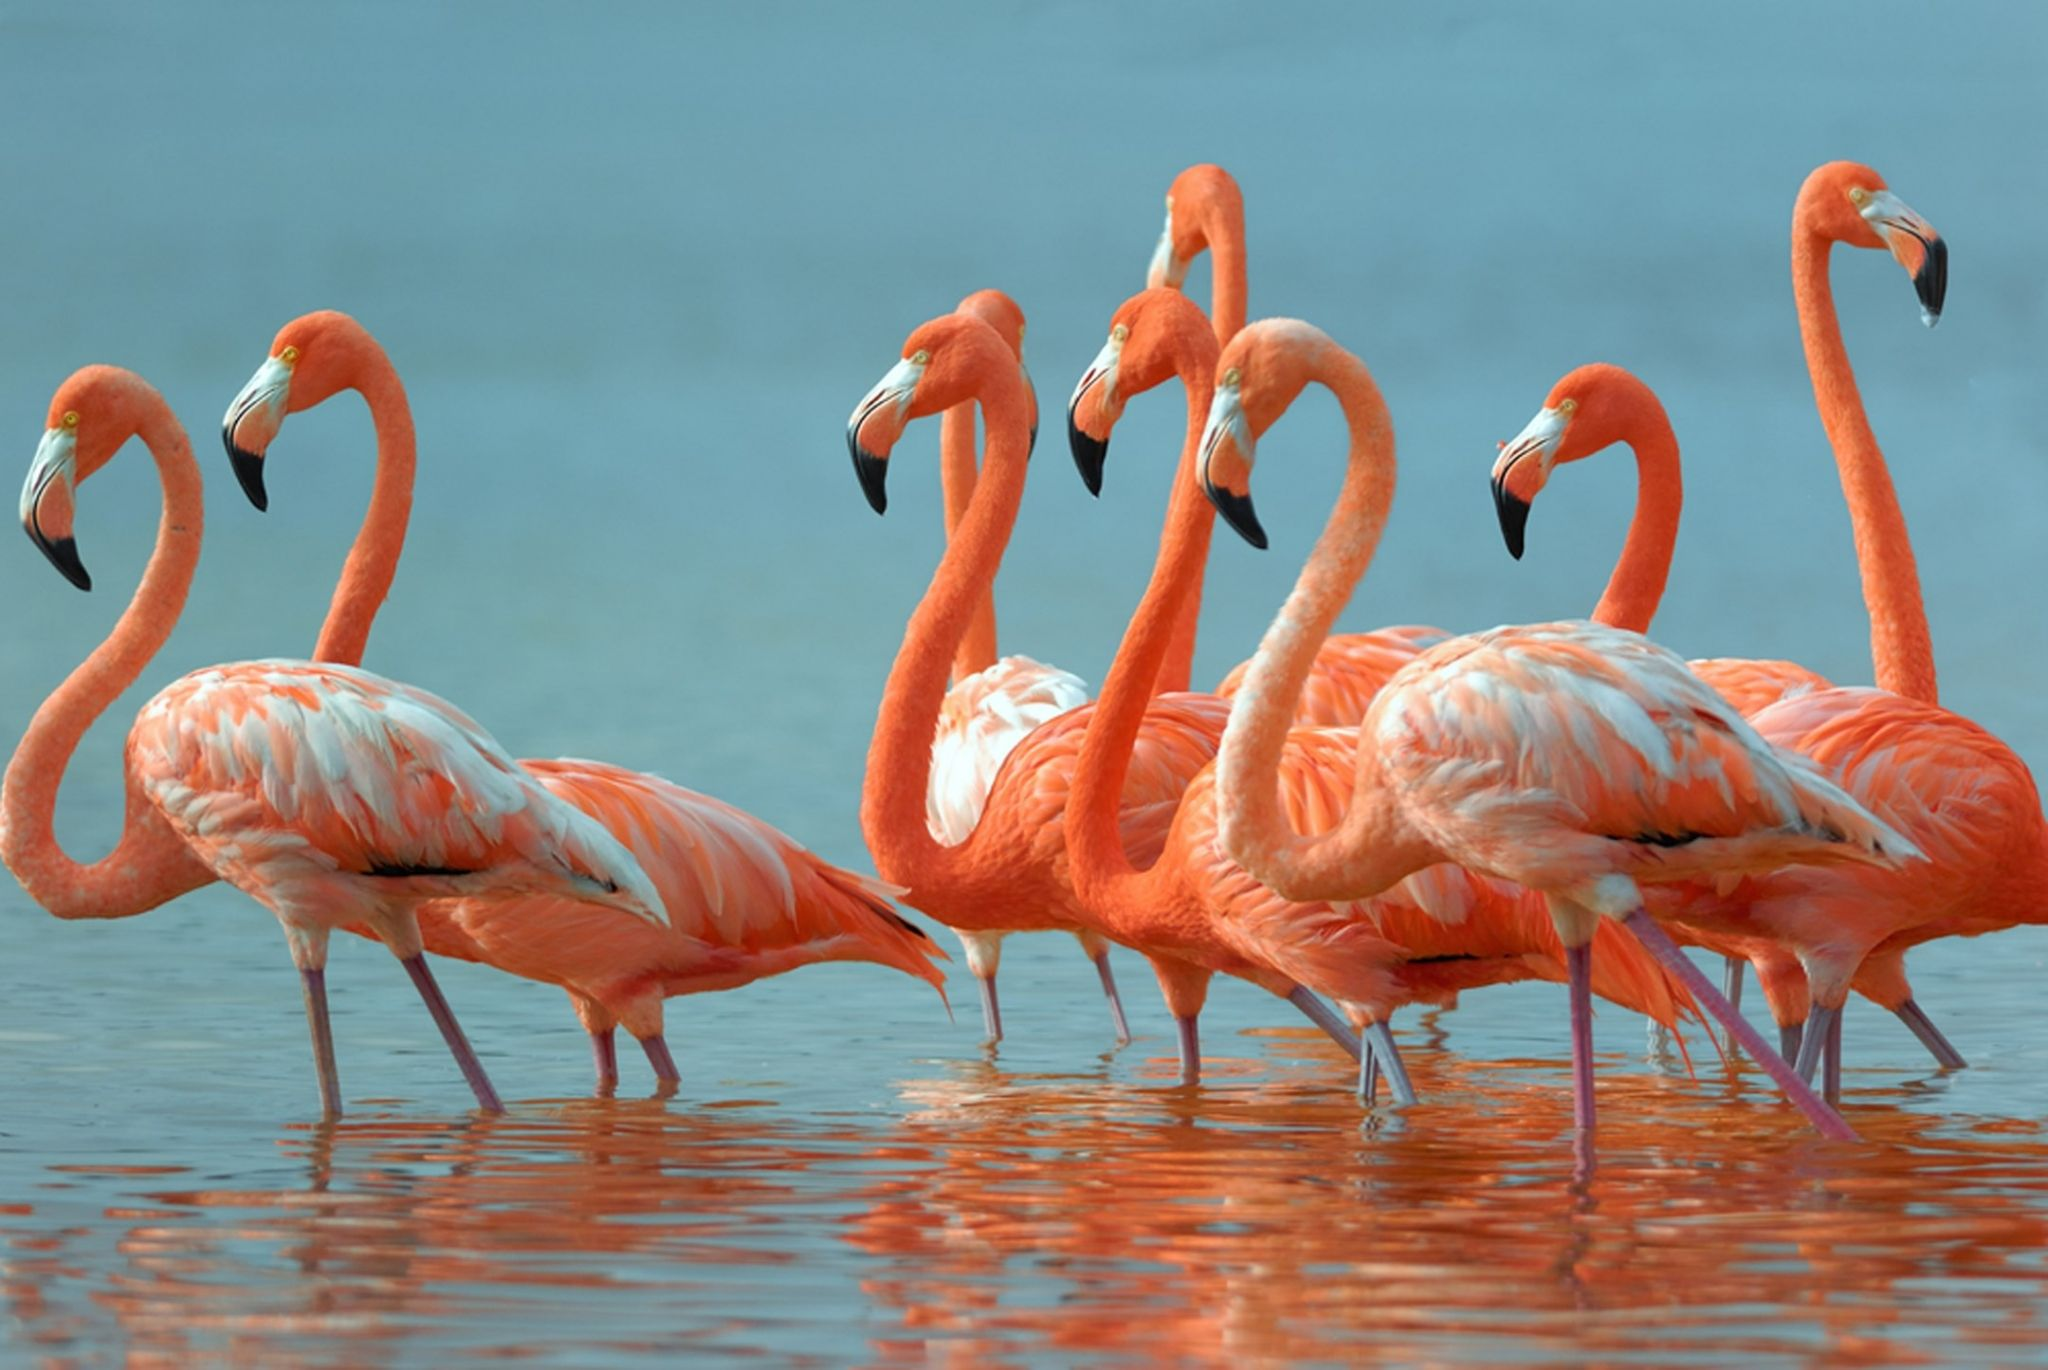 Flamingo Mexico 2270883 Hd Wallpaper Backgrounds Download